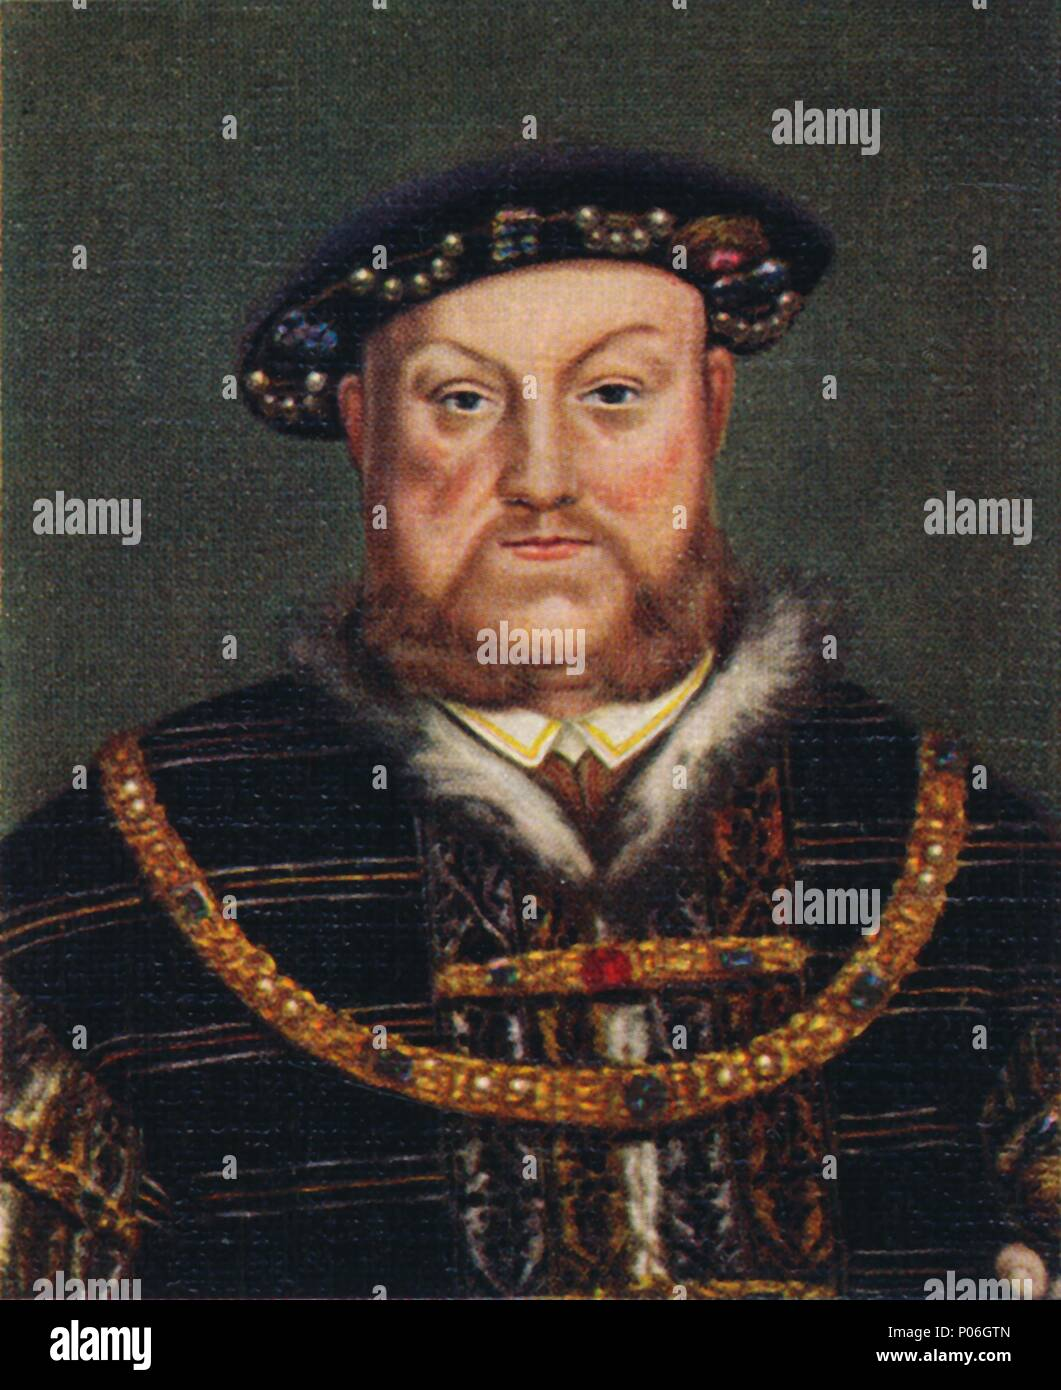 Henry VIII', 1935.  Henry (1491-1547) was King of England and Lord of Ireland (later King of Ireland) from 22 April 1509 until his death. He was the s - Stock Image